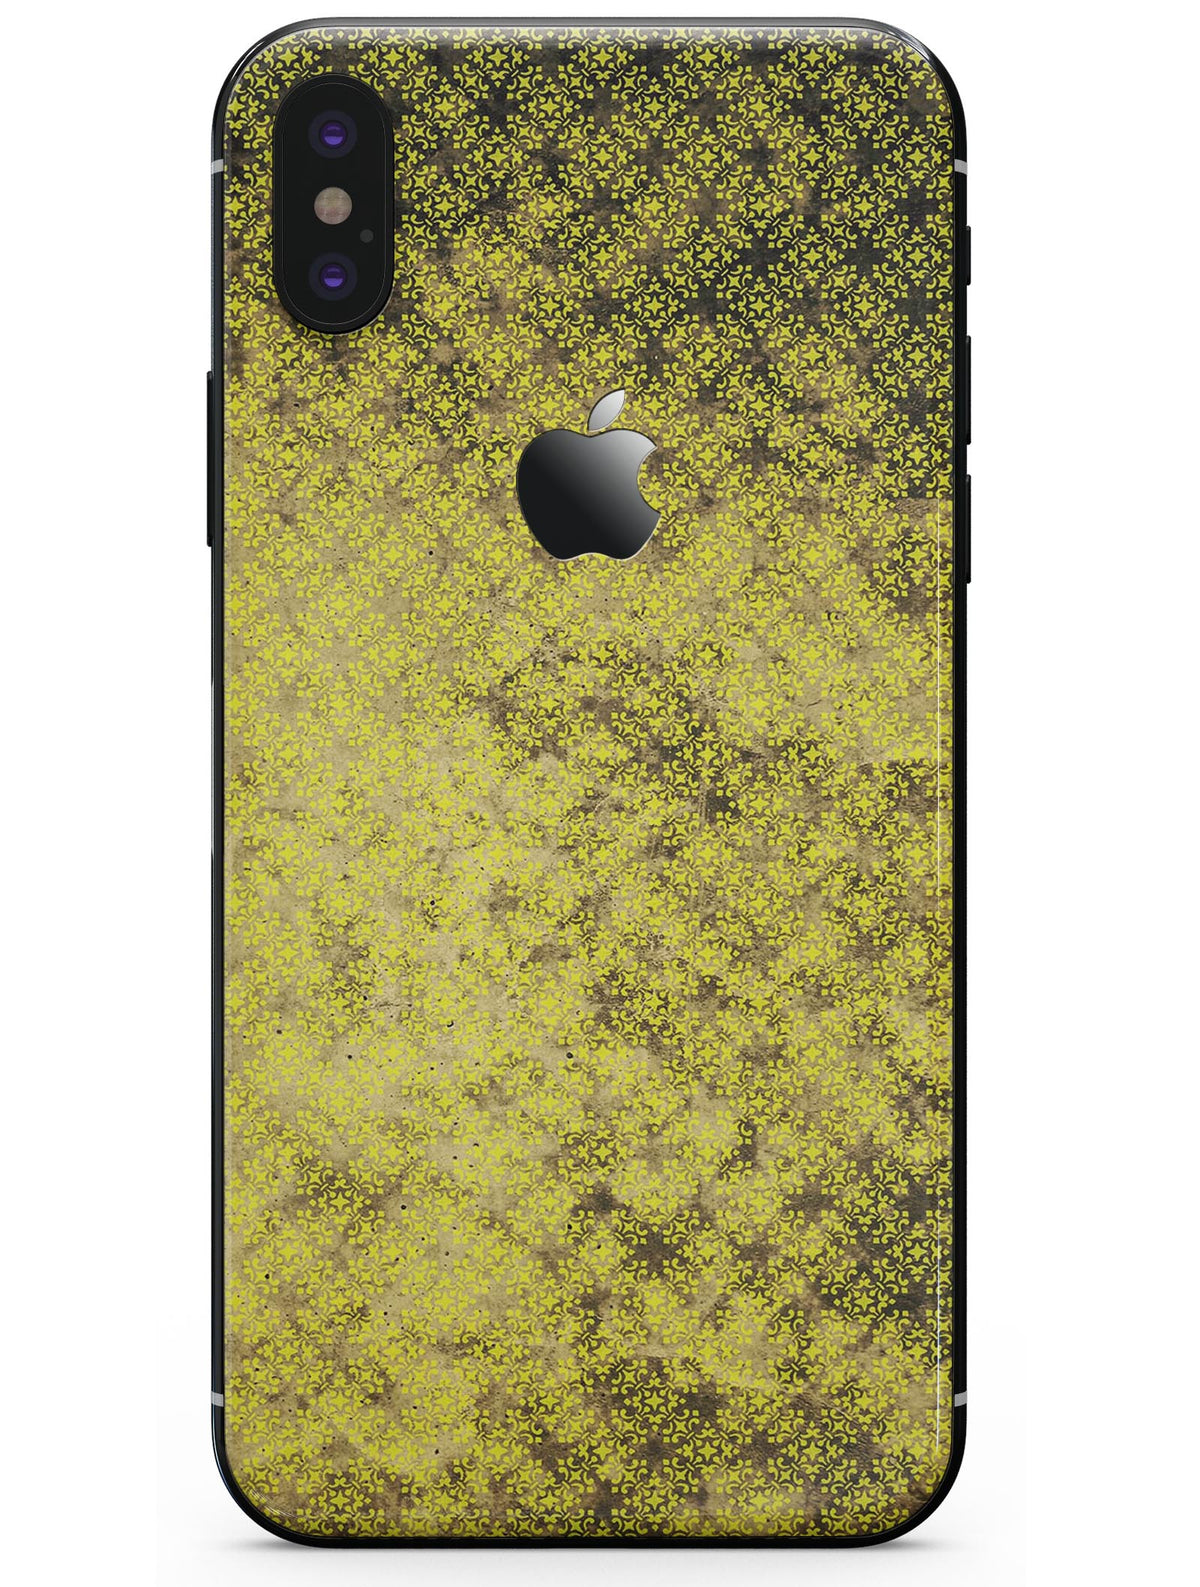 reputable site 32be3 36039 Grungy Black and Yellow Rococo Pattern - iPhone X Skin-Kit